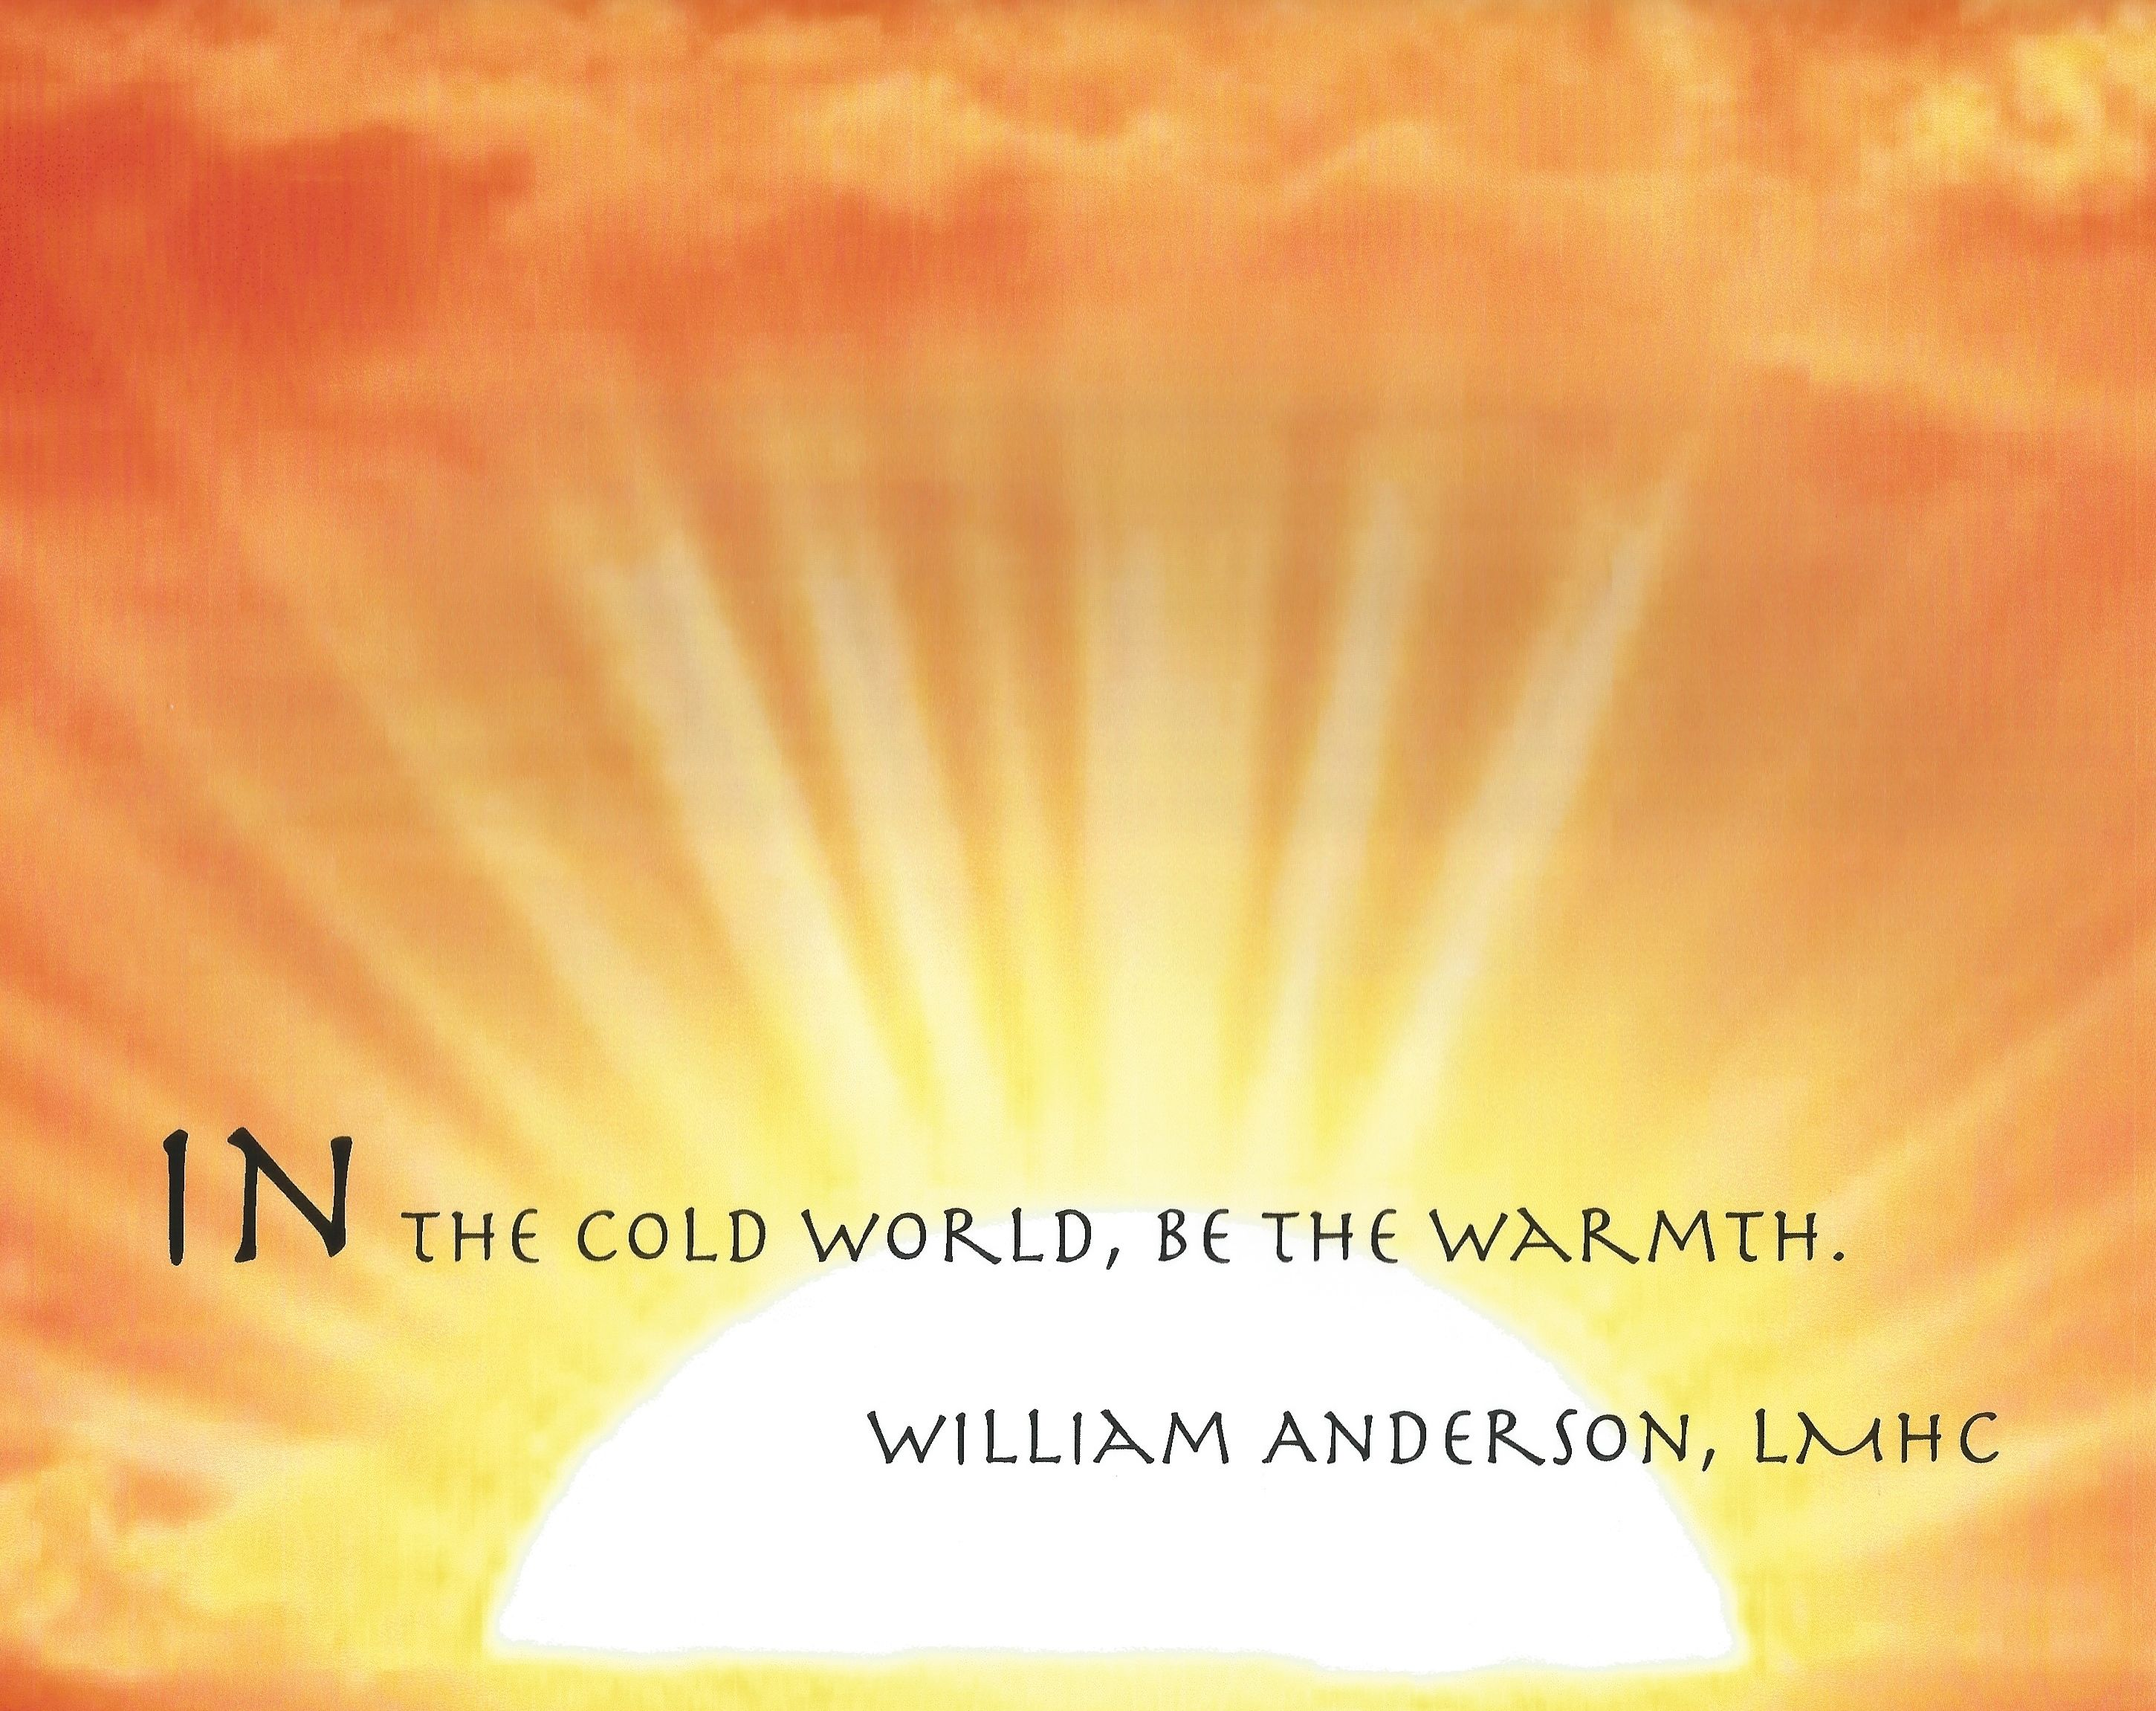 In the cold world, be the warmth - William Anderson, LMHC